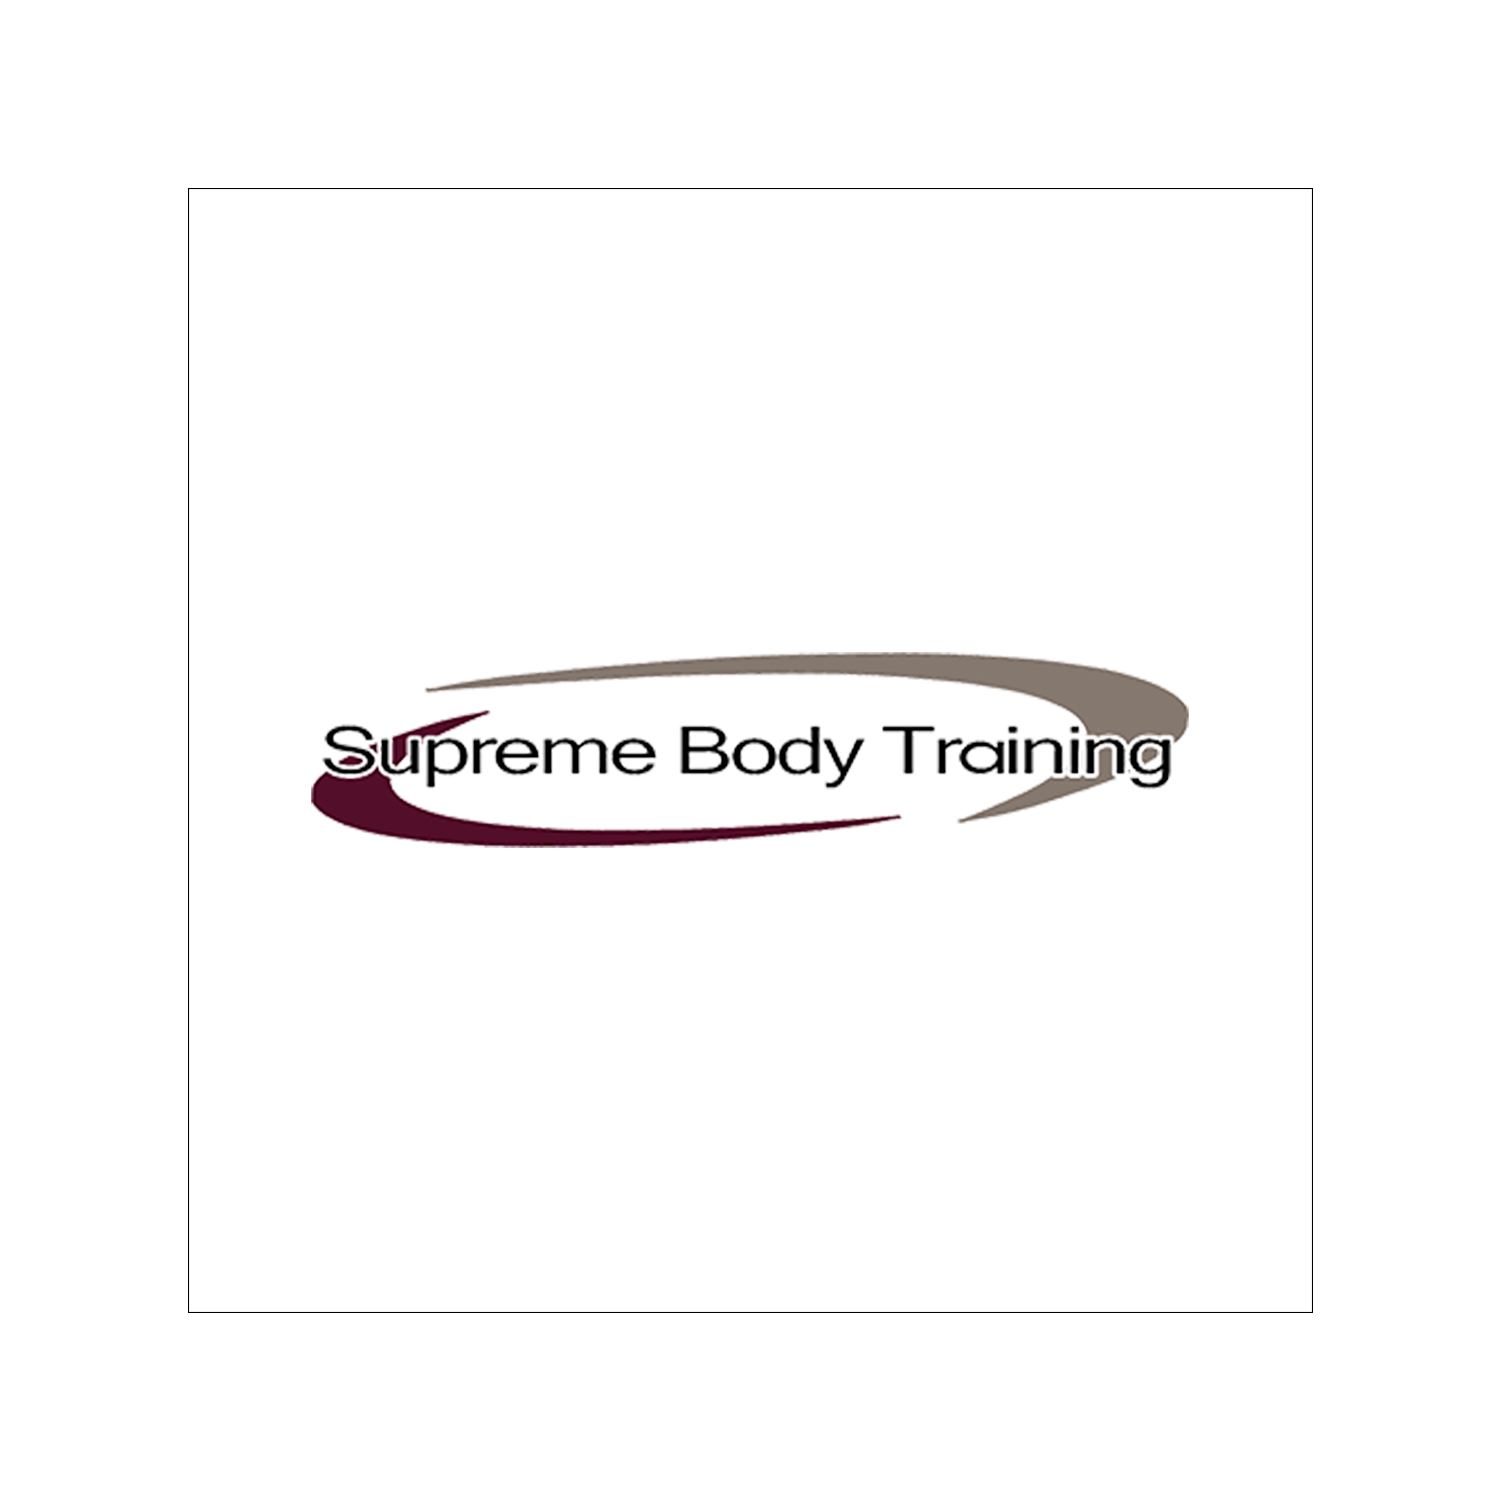 Supreme Body Training